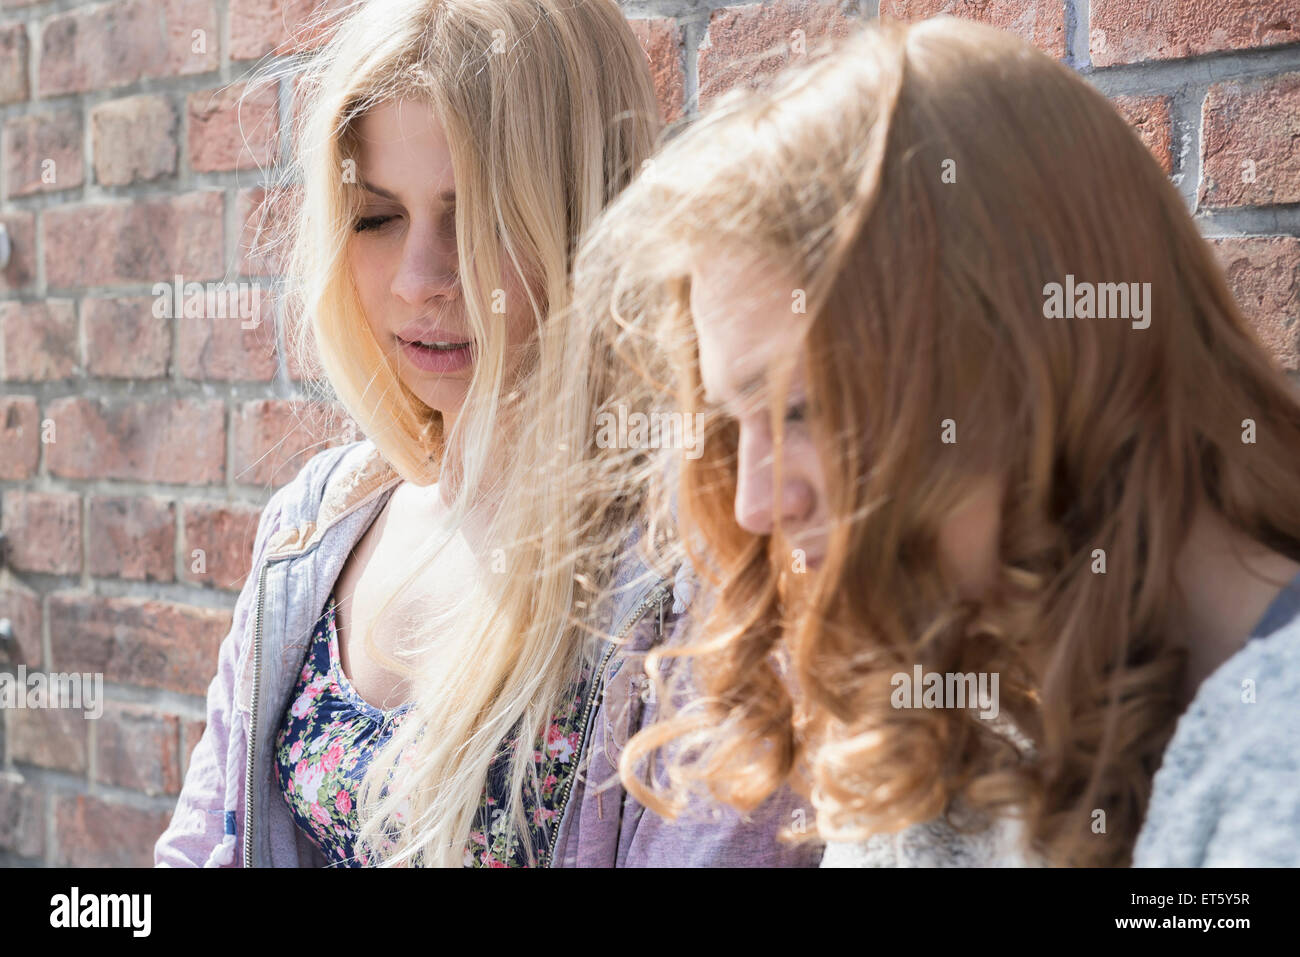 Two women leaning in front of brick wall, Munich, Bavaria, Germany - Stock Image